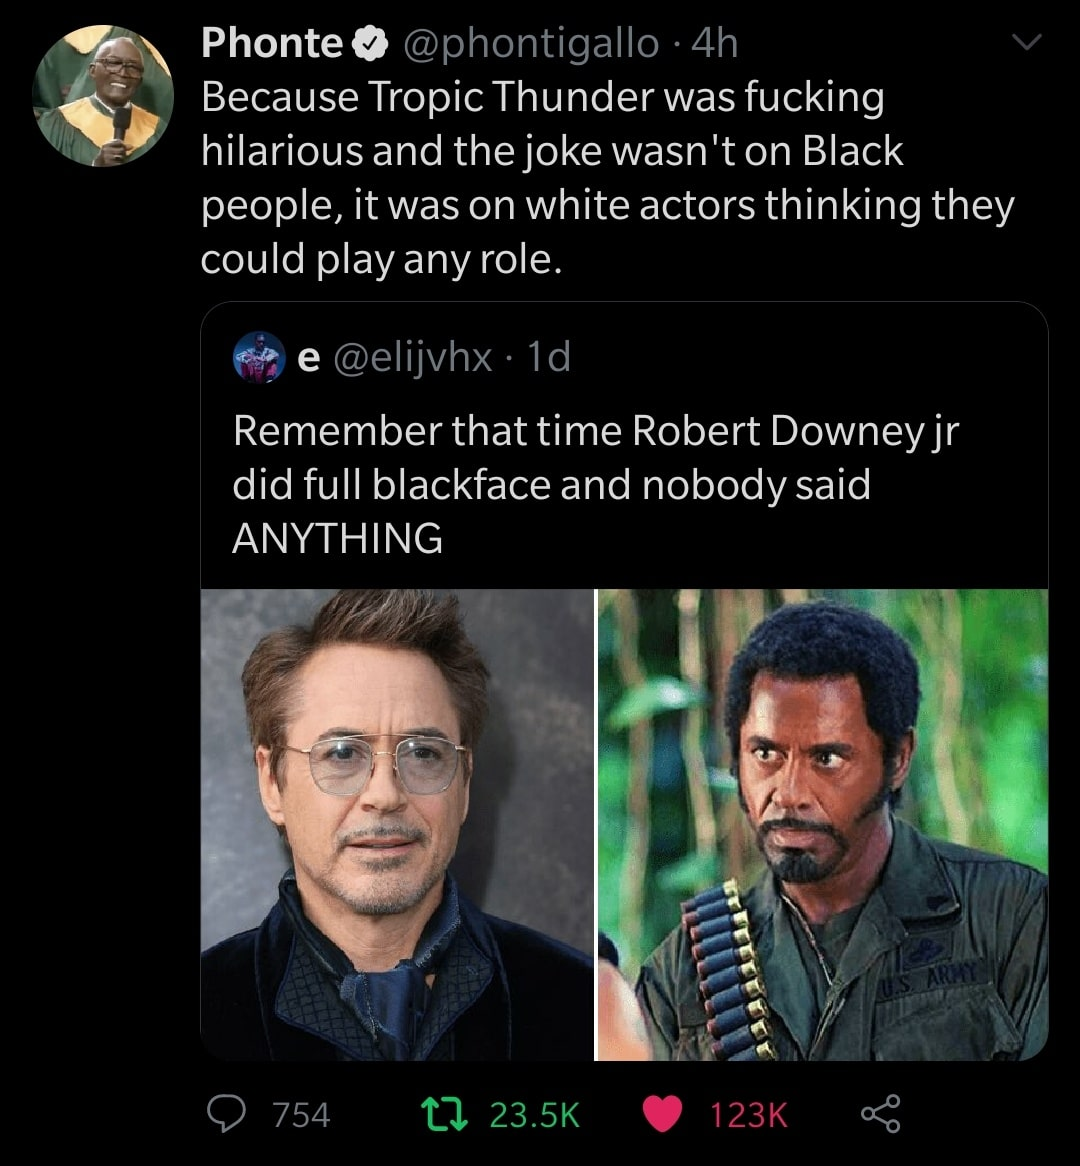 tweets, Tropic Thunder, RDJ, Stiller, Ben Stiller, Simple Jack Black Twitter Memes tweets, Tropic Thunder, RDJ, Stiller, Ben Stiller, Simple Jack text: Phontee @phontigallo • 4h Because Tropic Thunder was fucking hilarious and the joke wasn't on Black people, it was on white actors thinking they could play any role. e @elijvhx • Id Remember that time Robert Downey jr did full blackface and nobody said ANYTHING 0 754 ta 23.5K 123K